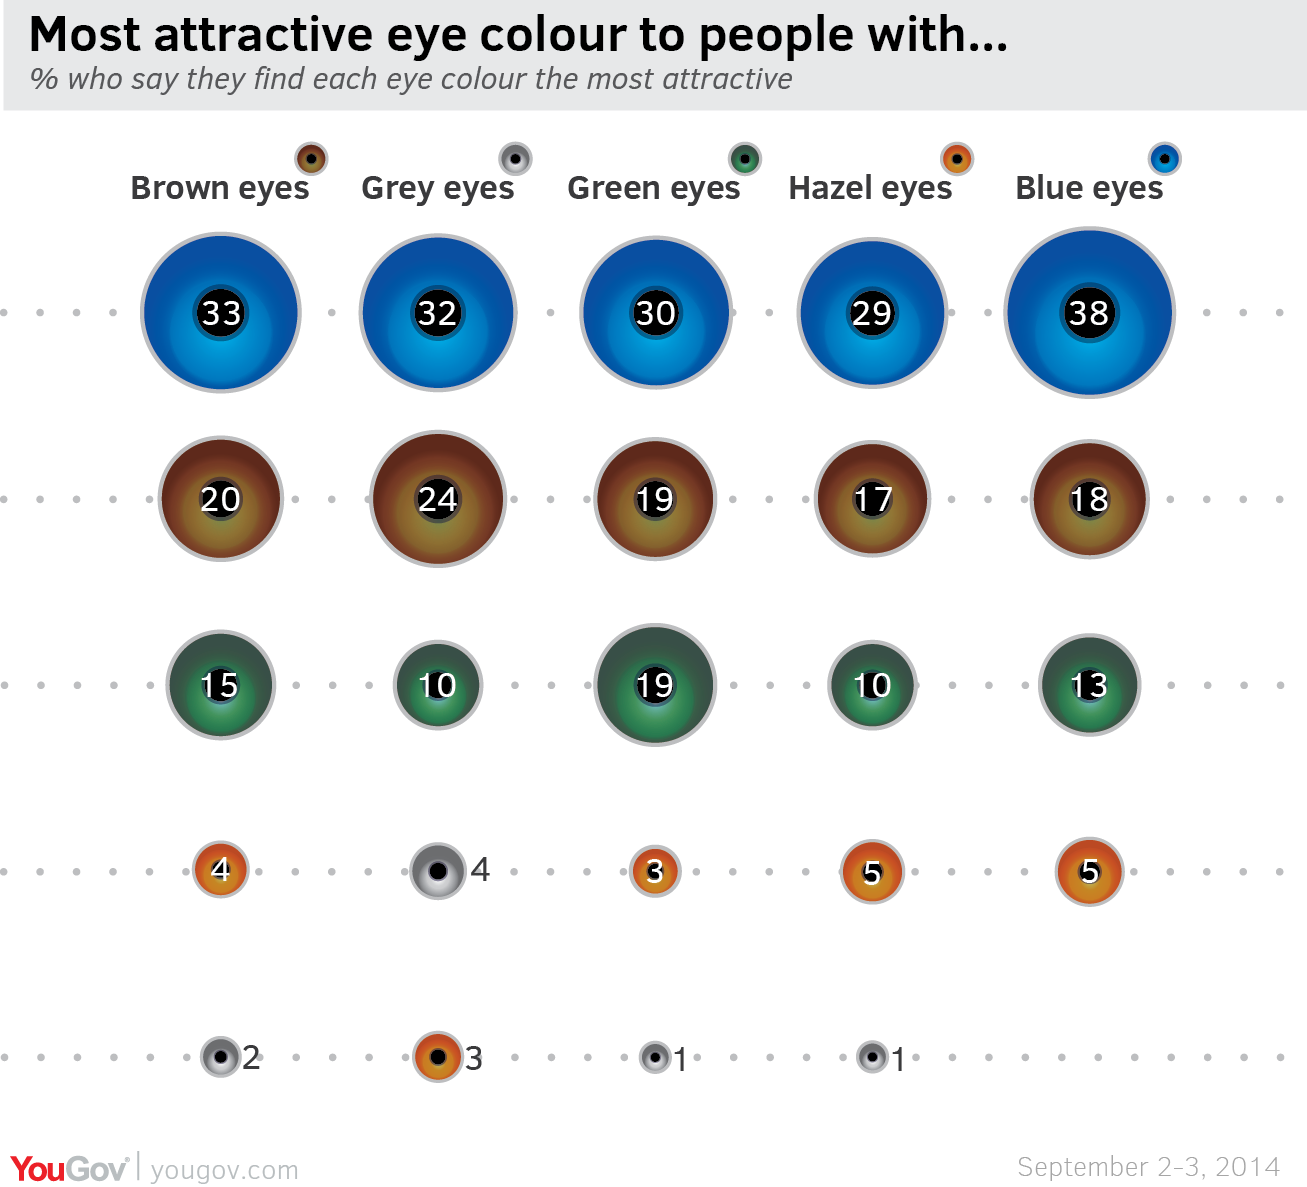 British Public Swoon For Blue Eyes Yougov